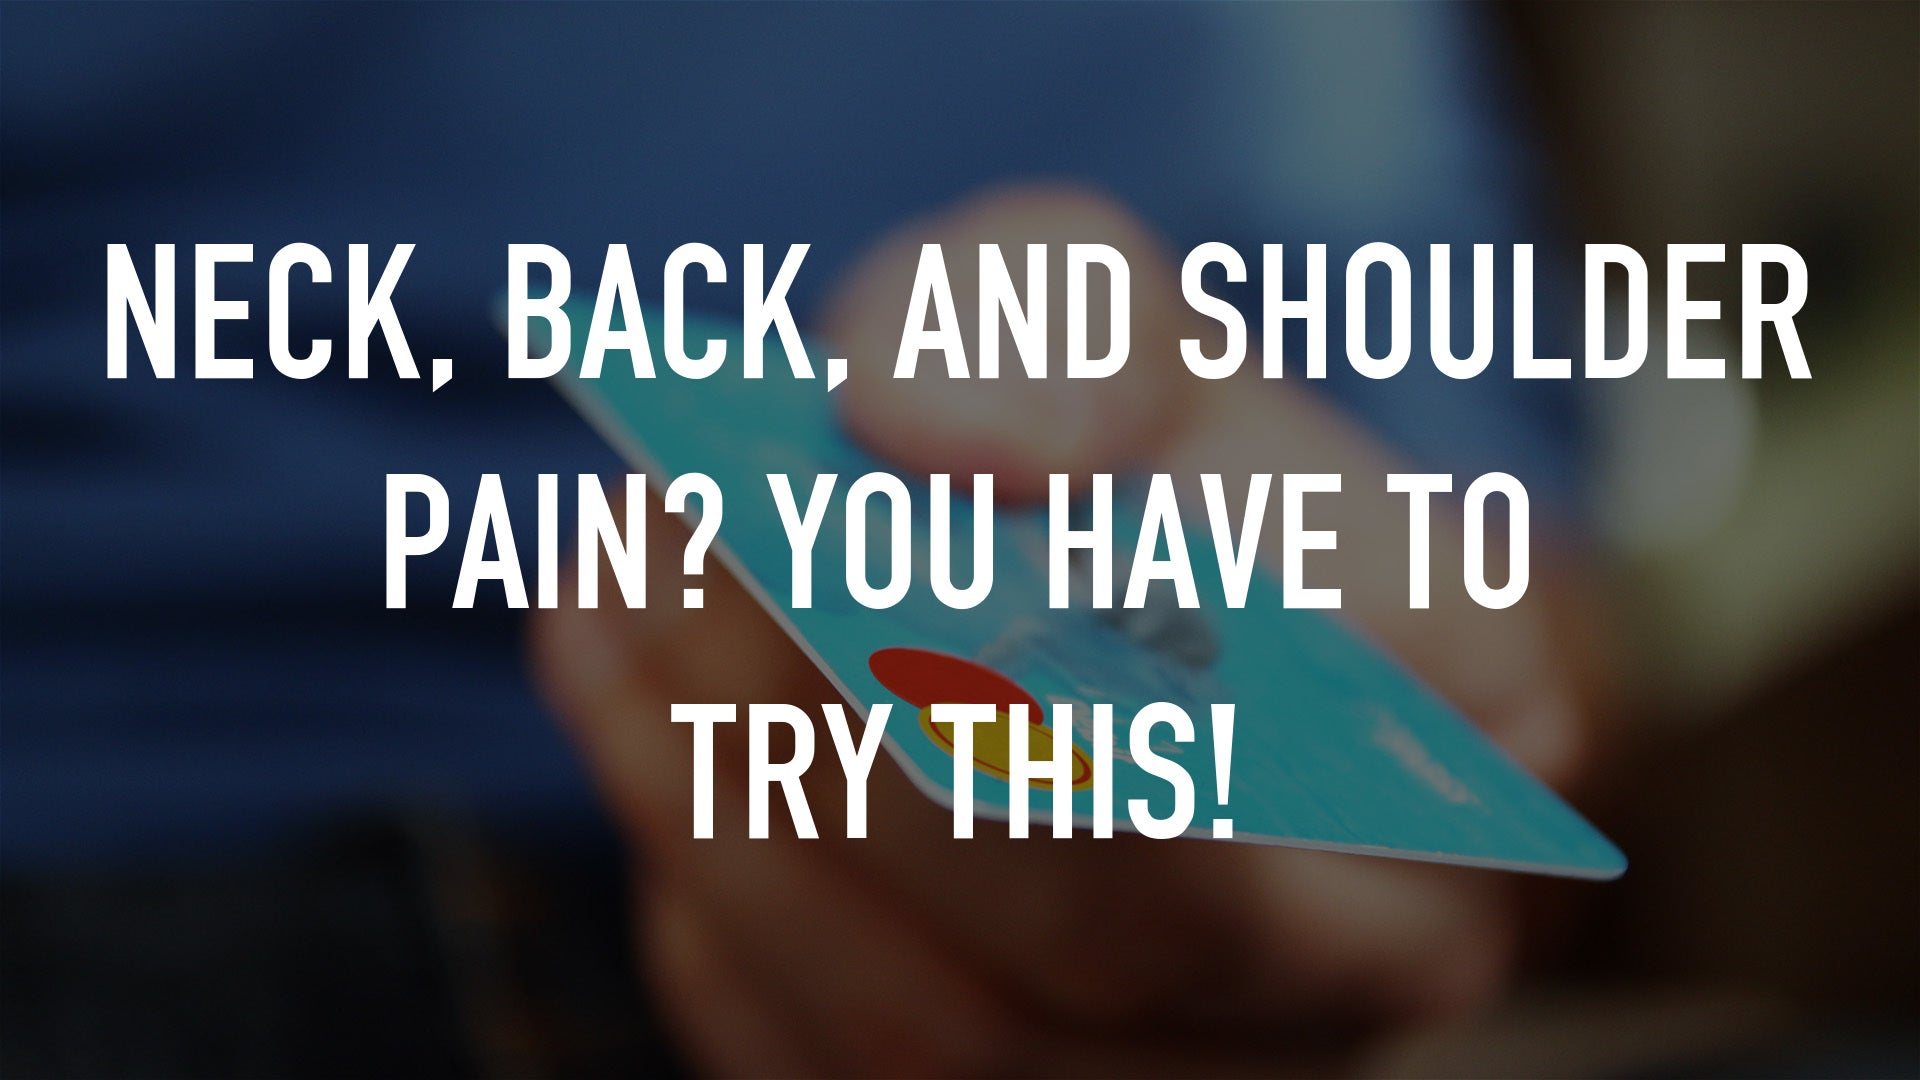 Neck, Back, and Shoulder Pain? You have to try this!